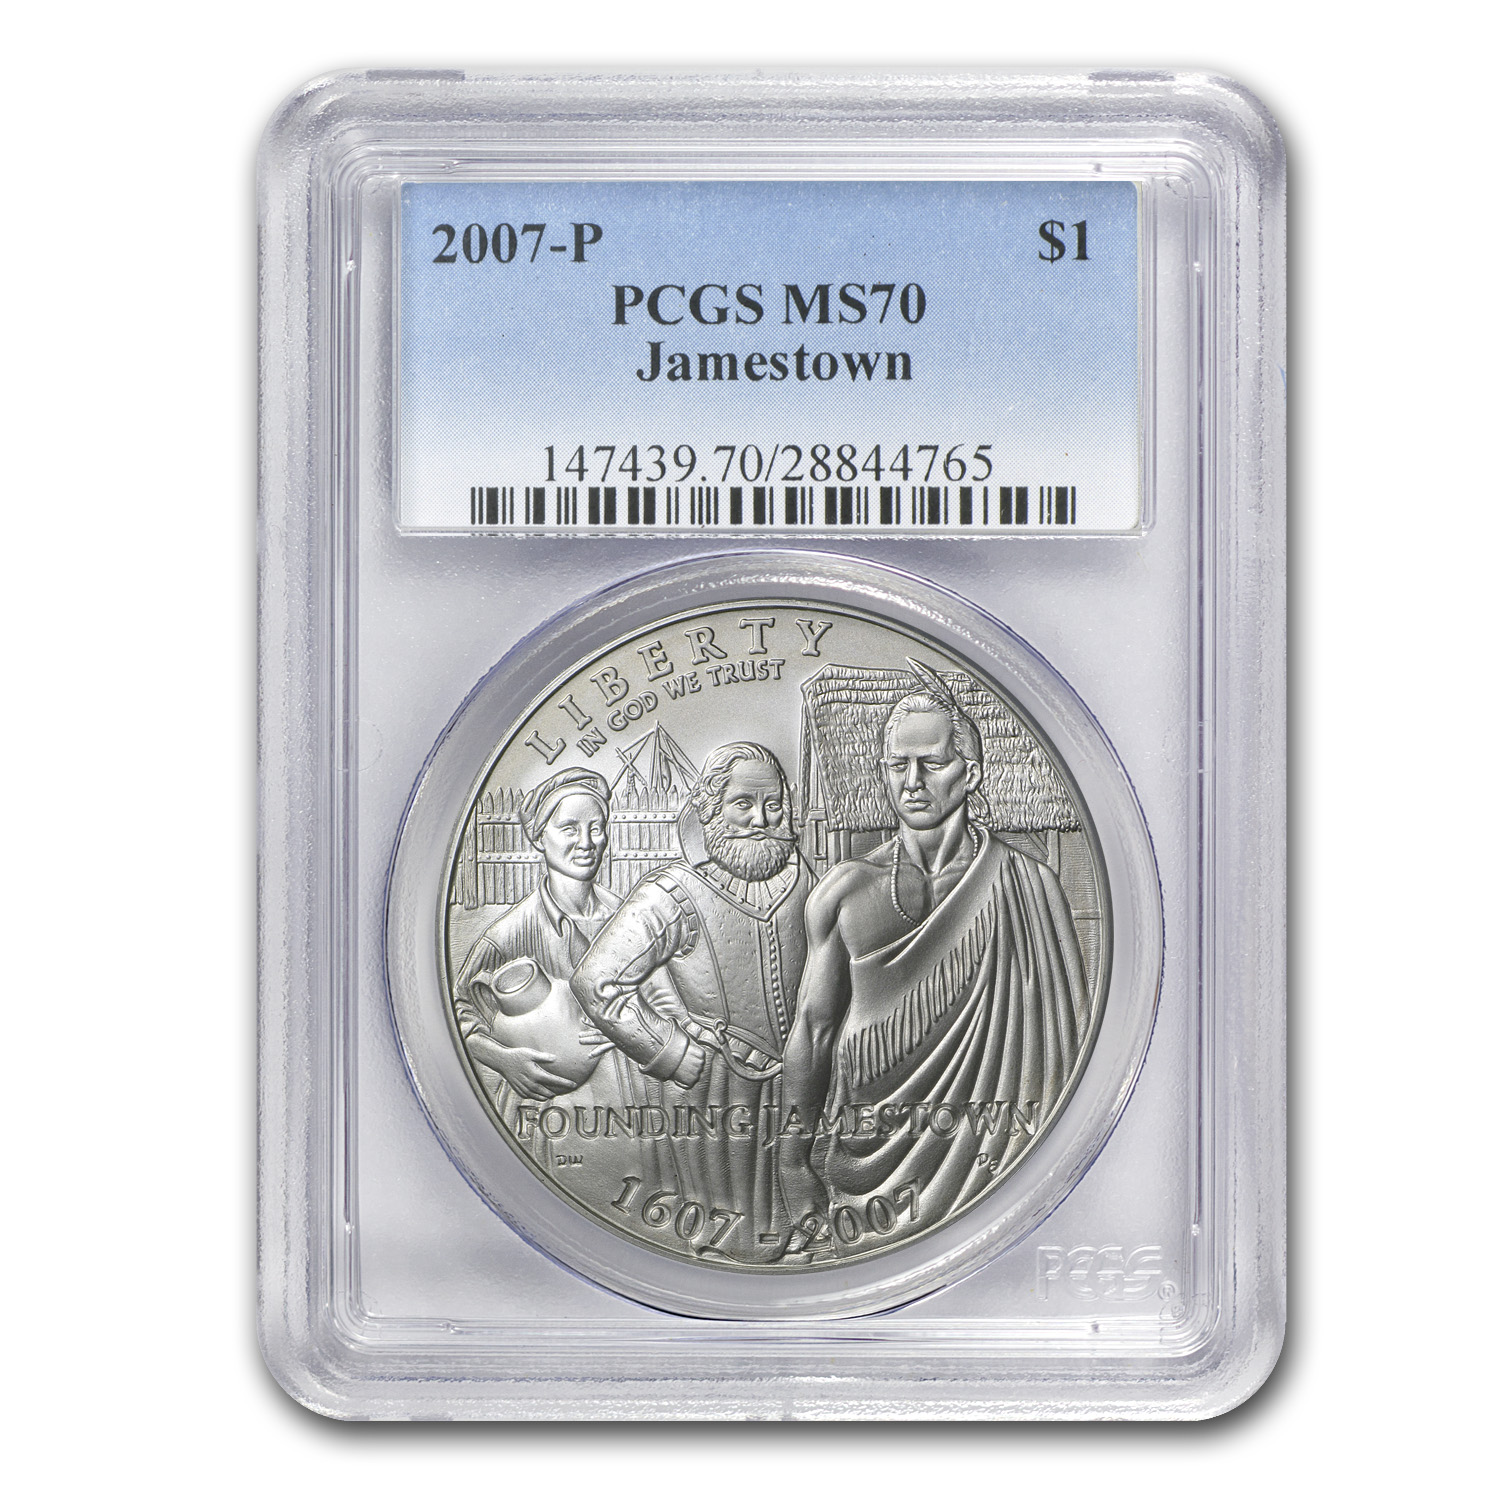 2007-P Jamestown 400th Anniv $1 Silver Commem MS-70 PCGS